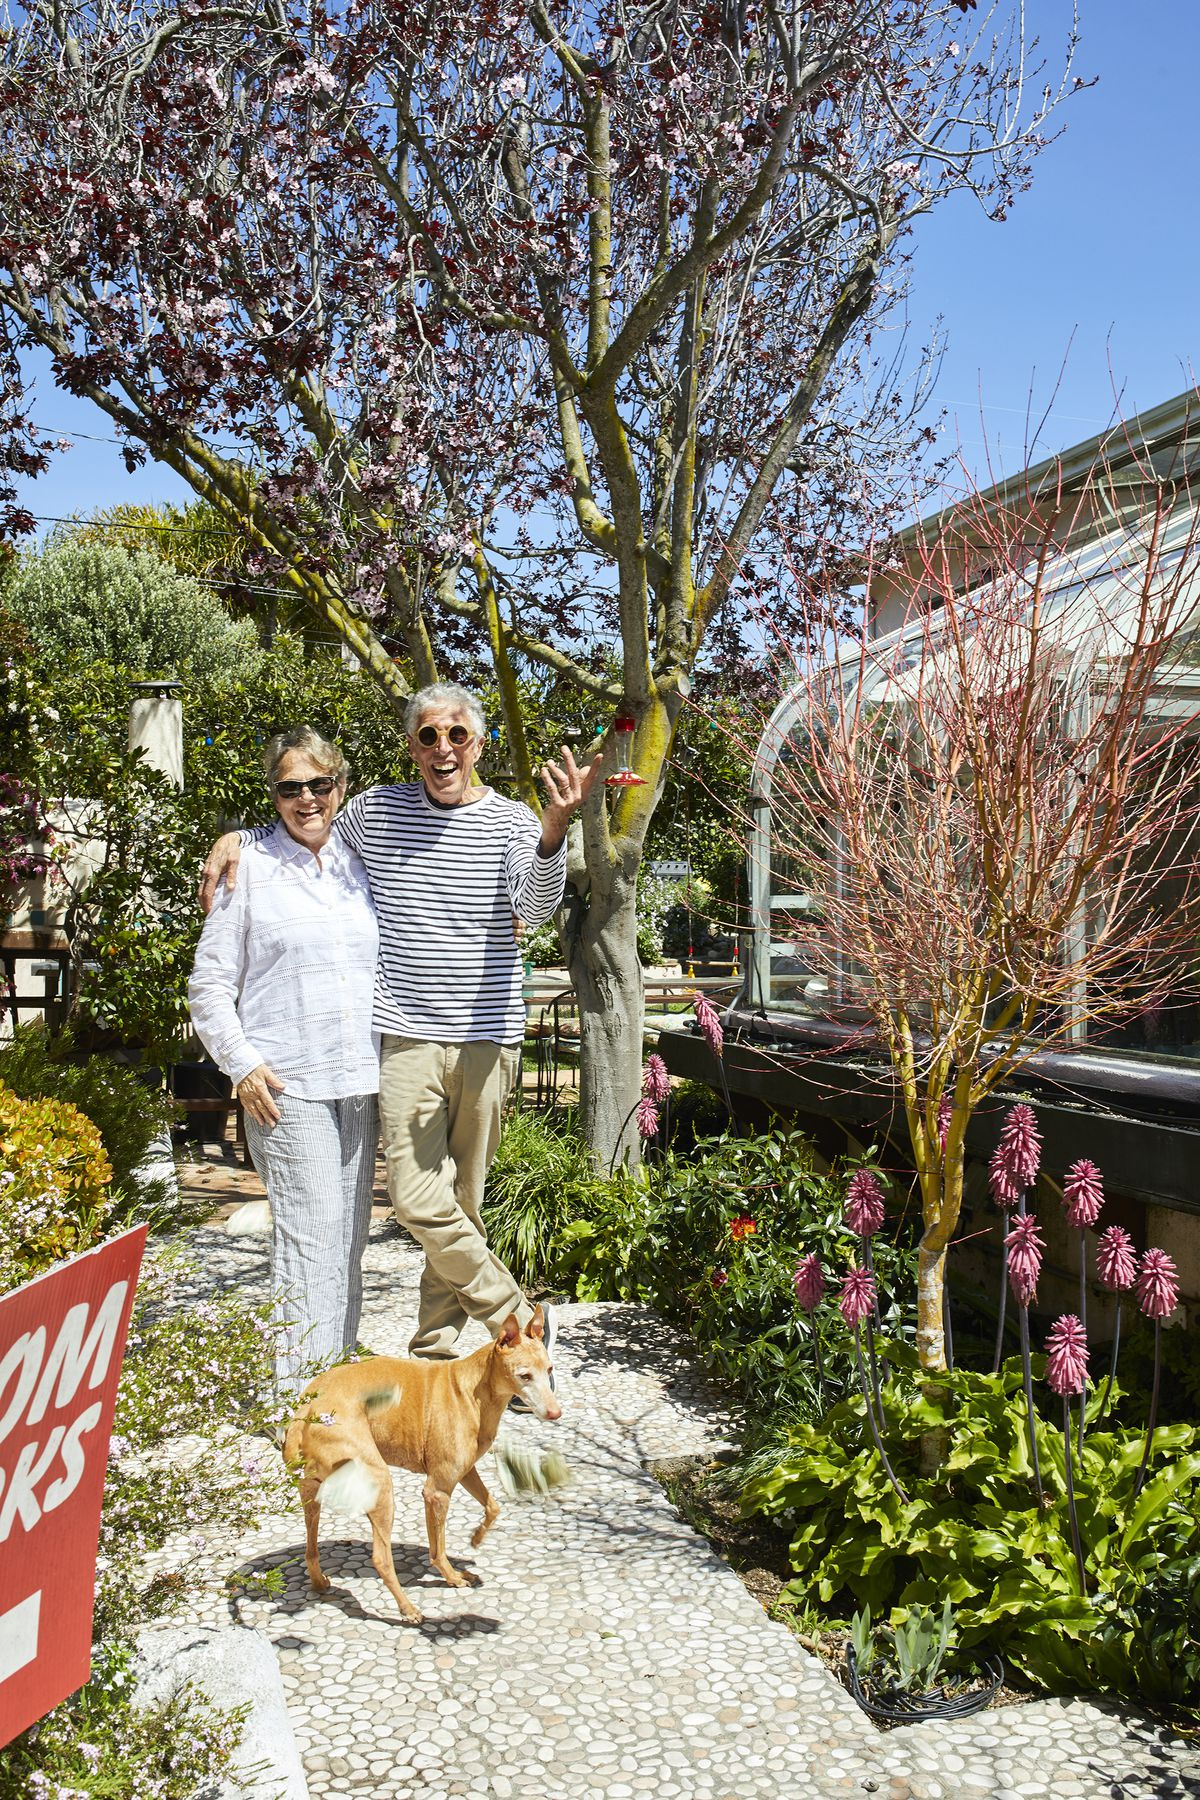 The homeowners, a man and a woman stand smiling under a tree. There is a dog standing in front of them.